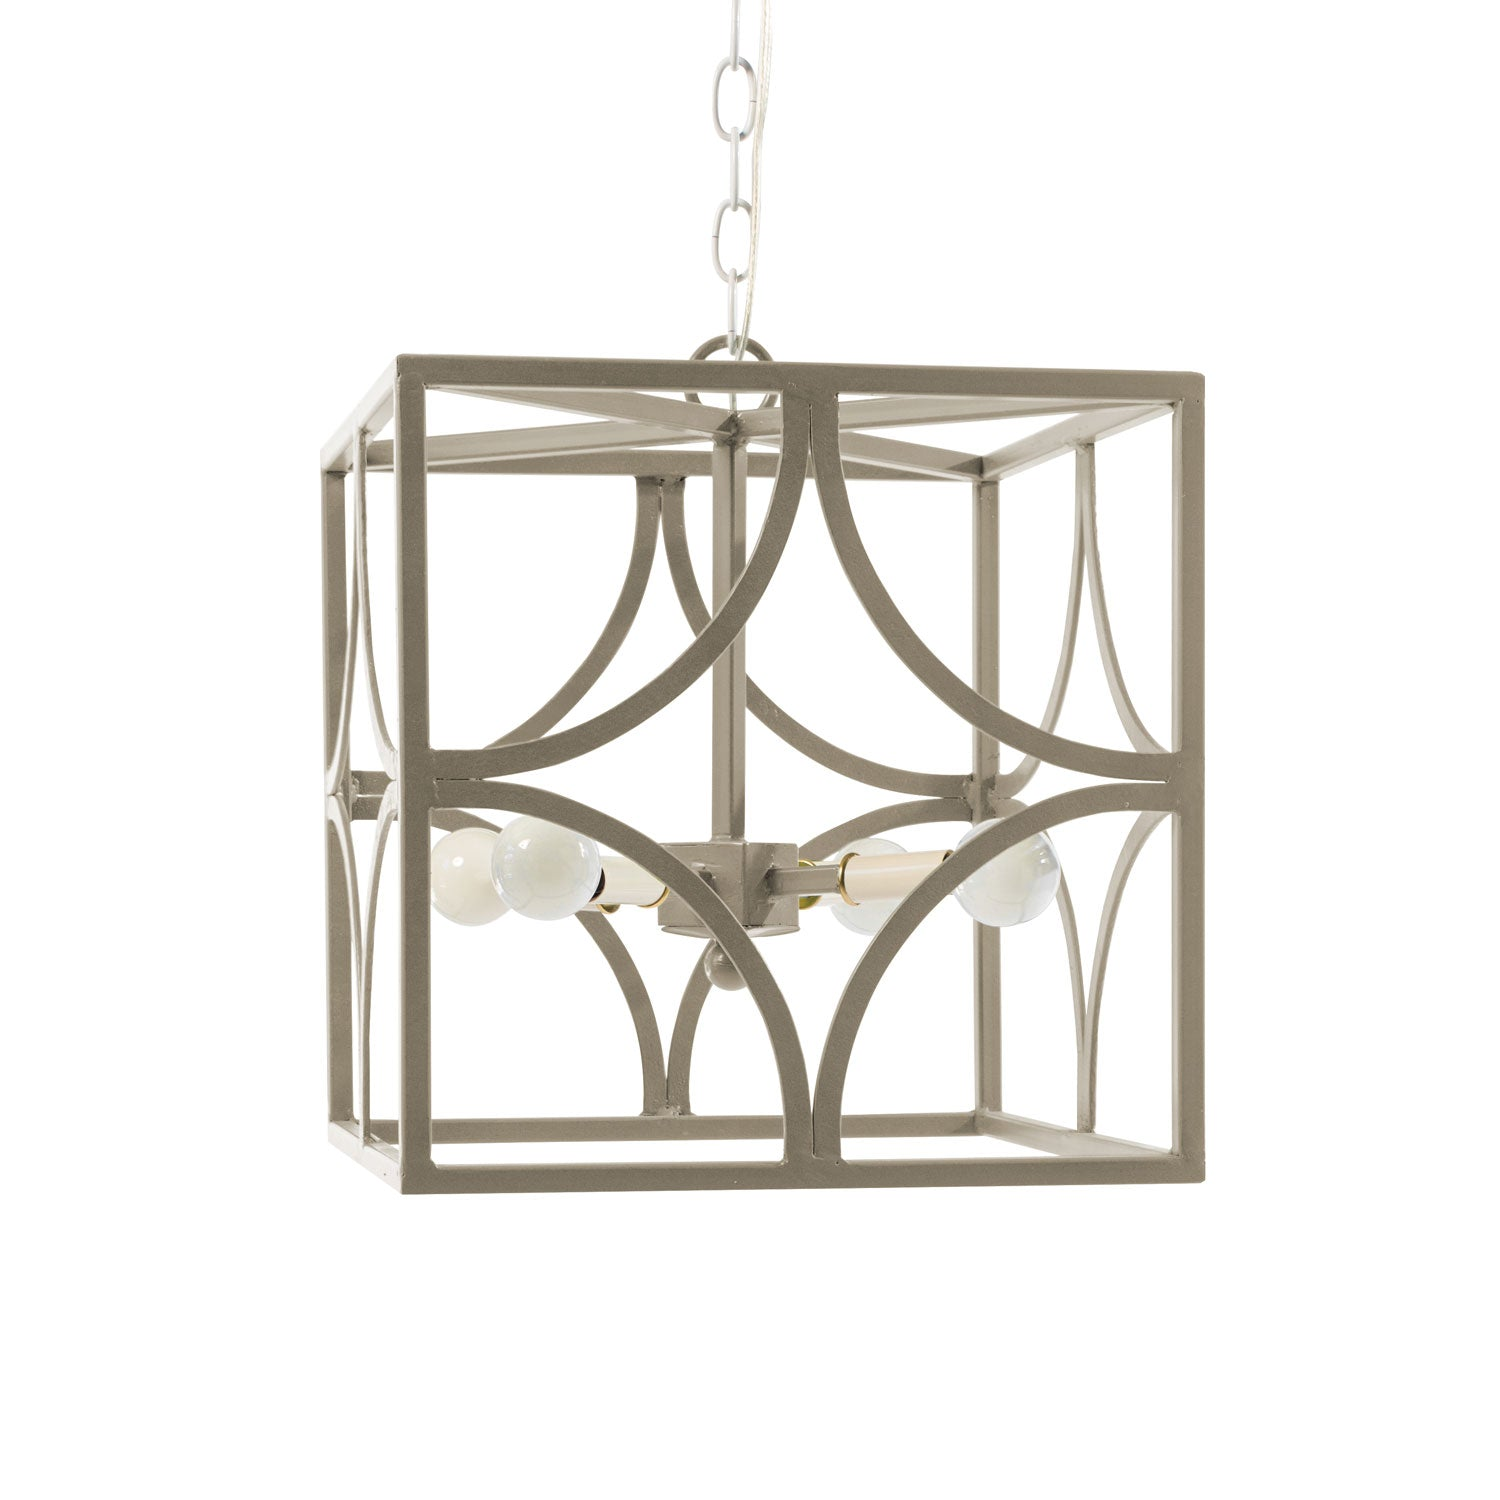 Iron Chandelier by Stray Dog Designs, made in Mexico